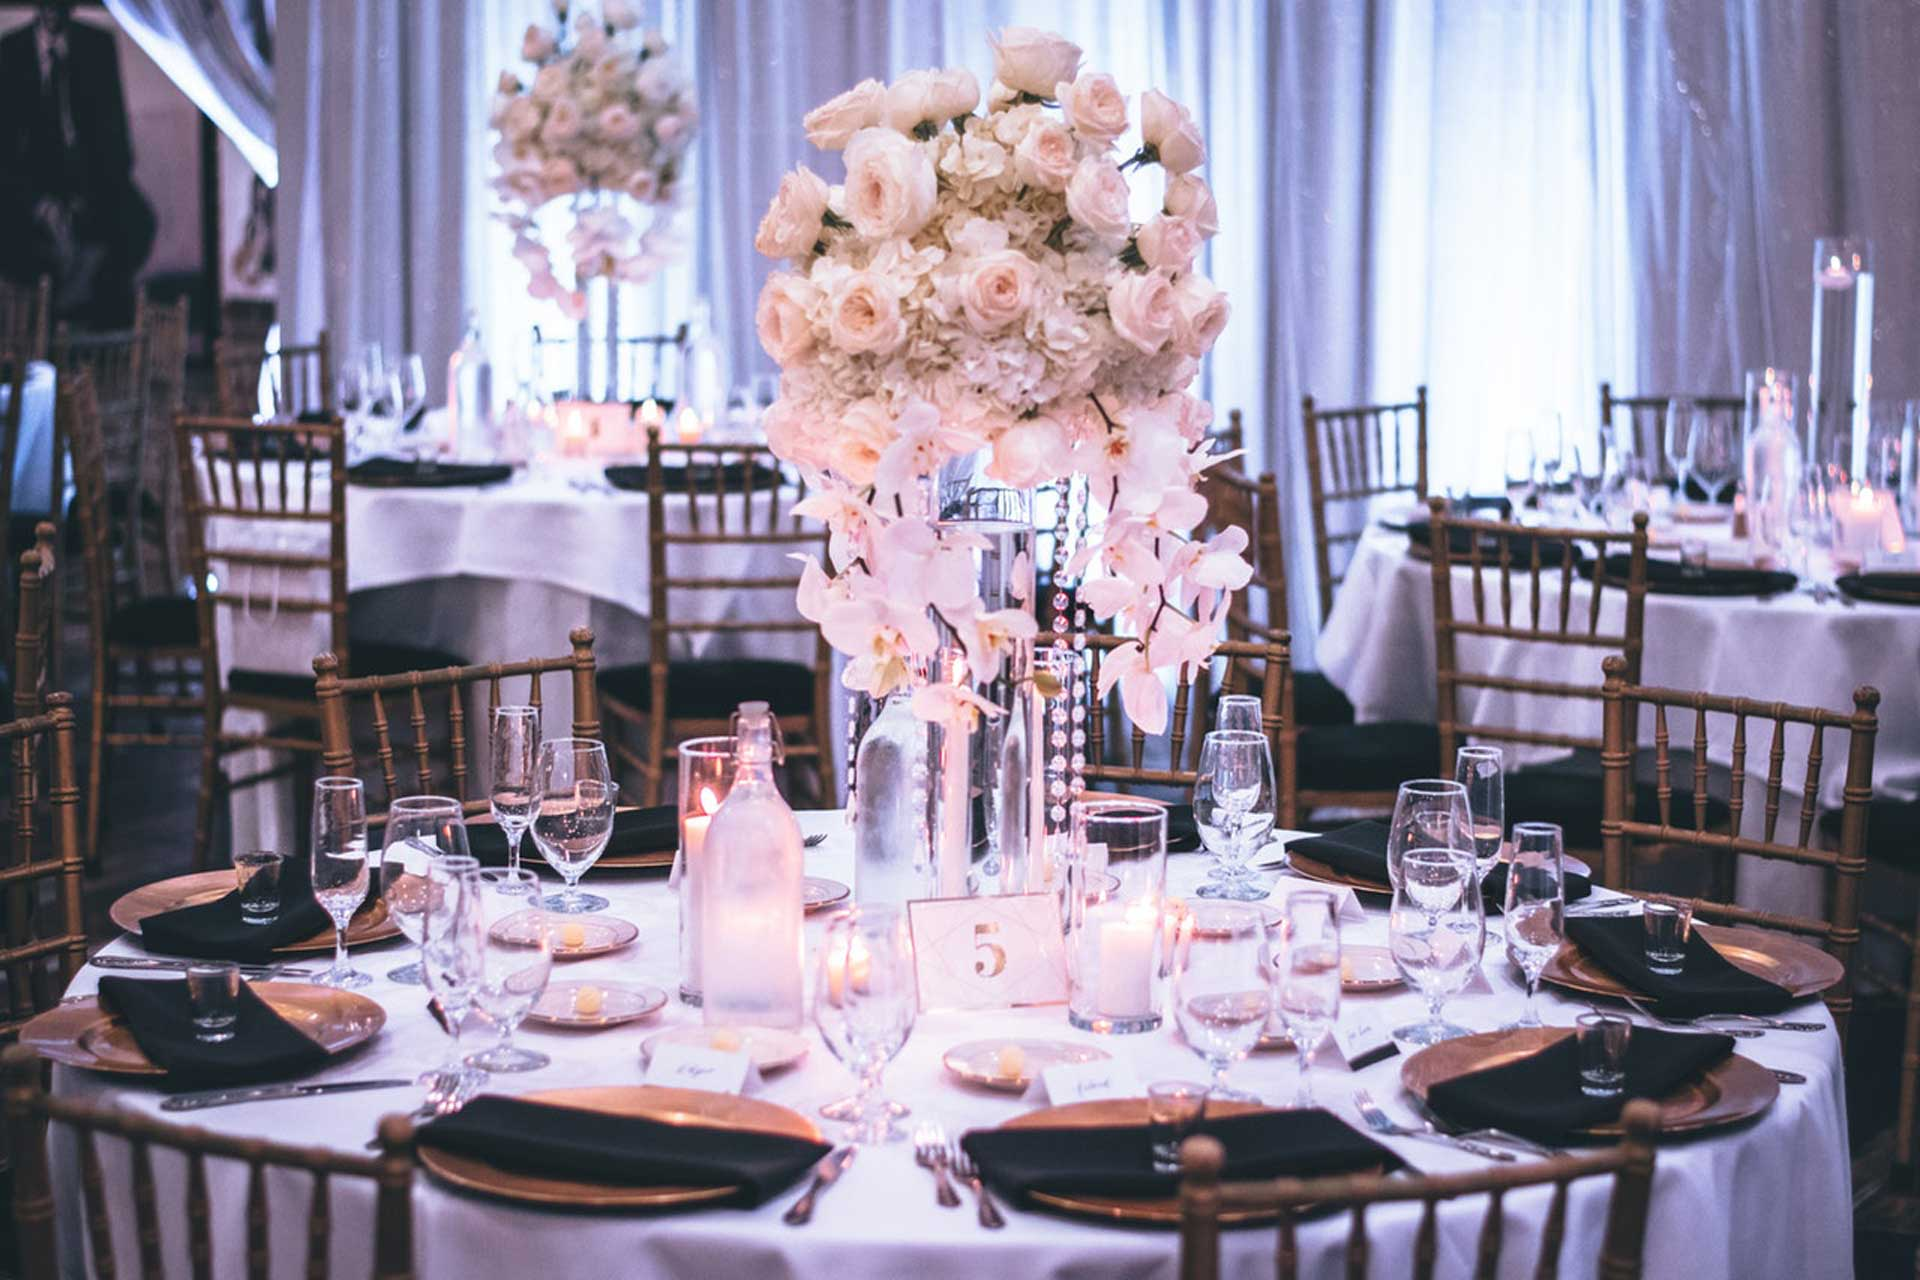 Tips for Hosting an Event in a Banquet Hall